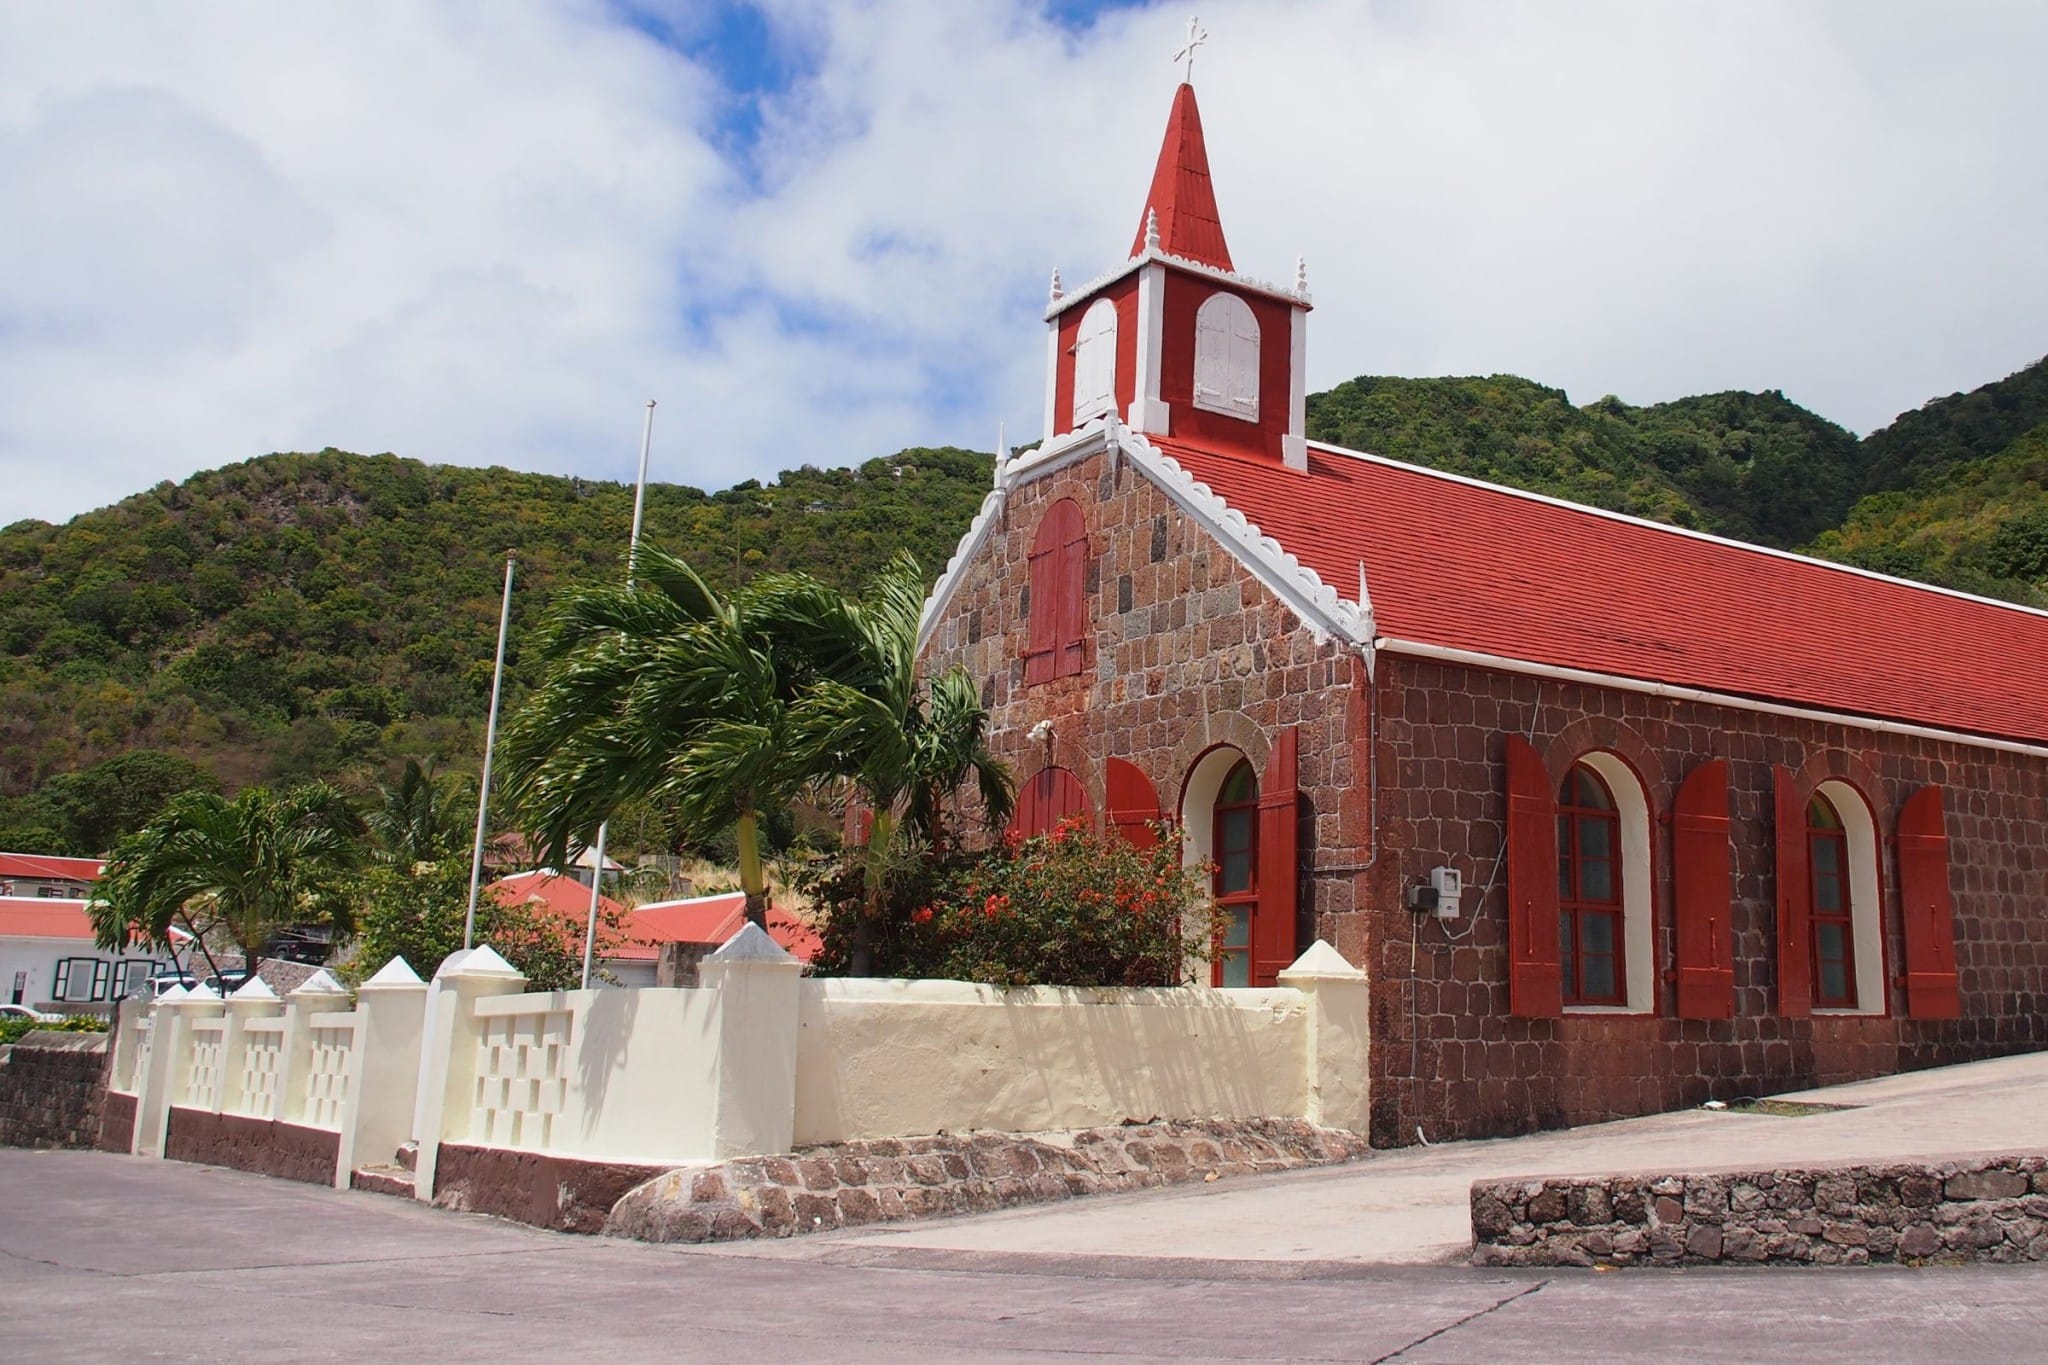 Saba Churches Offer Sublime Uncommon Photo-Op